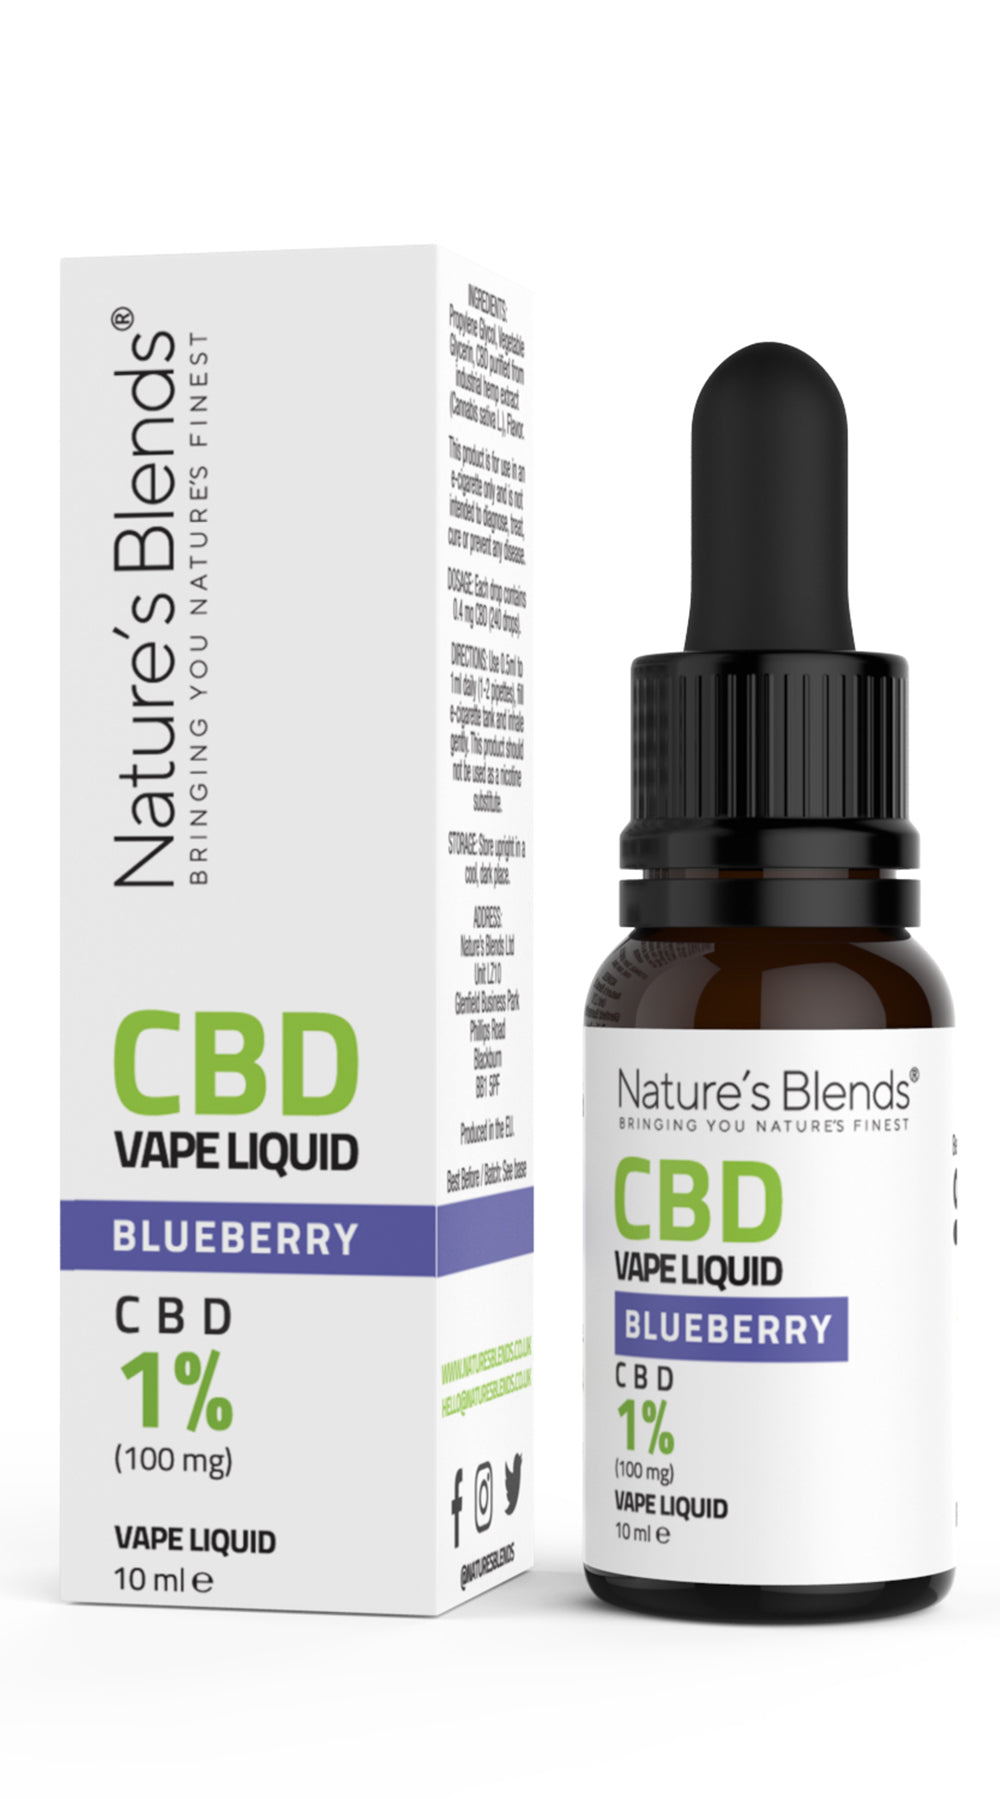 A 10ml bottle of 100mg cbd vape blueberry flavour along side natures blends packaging